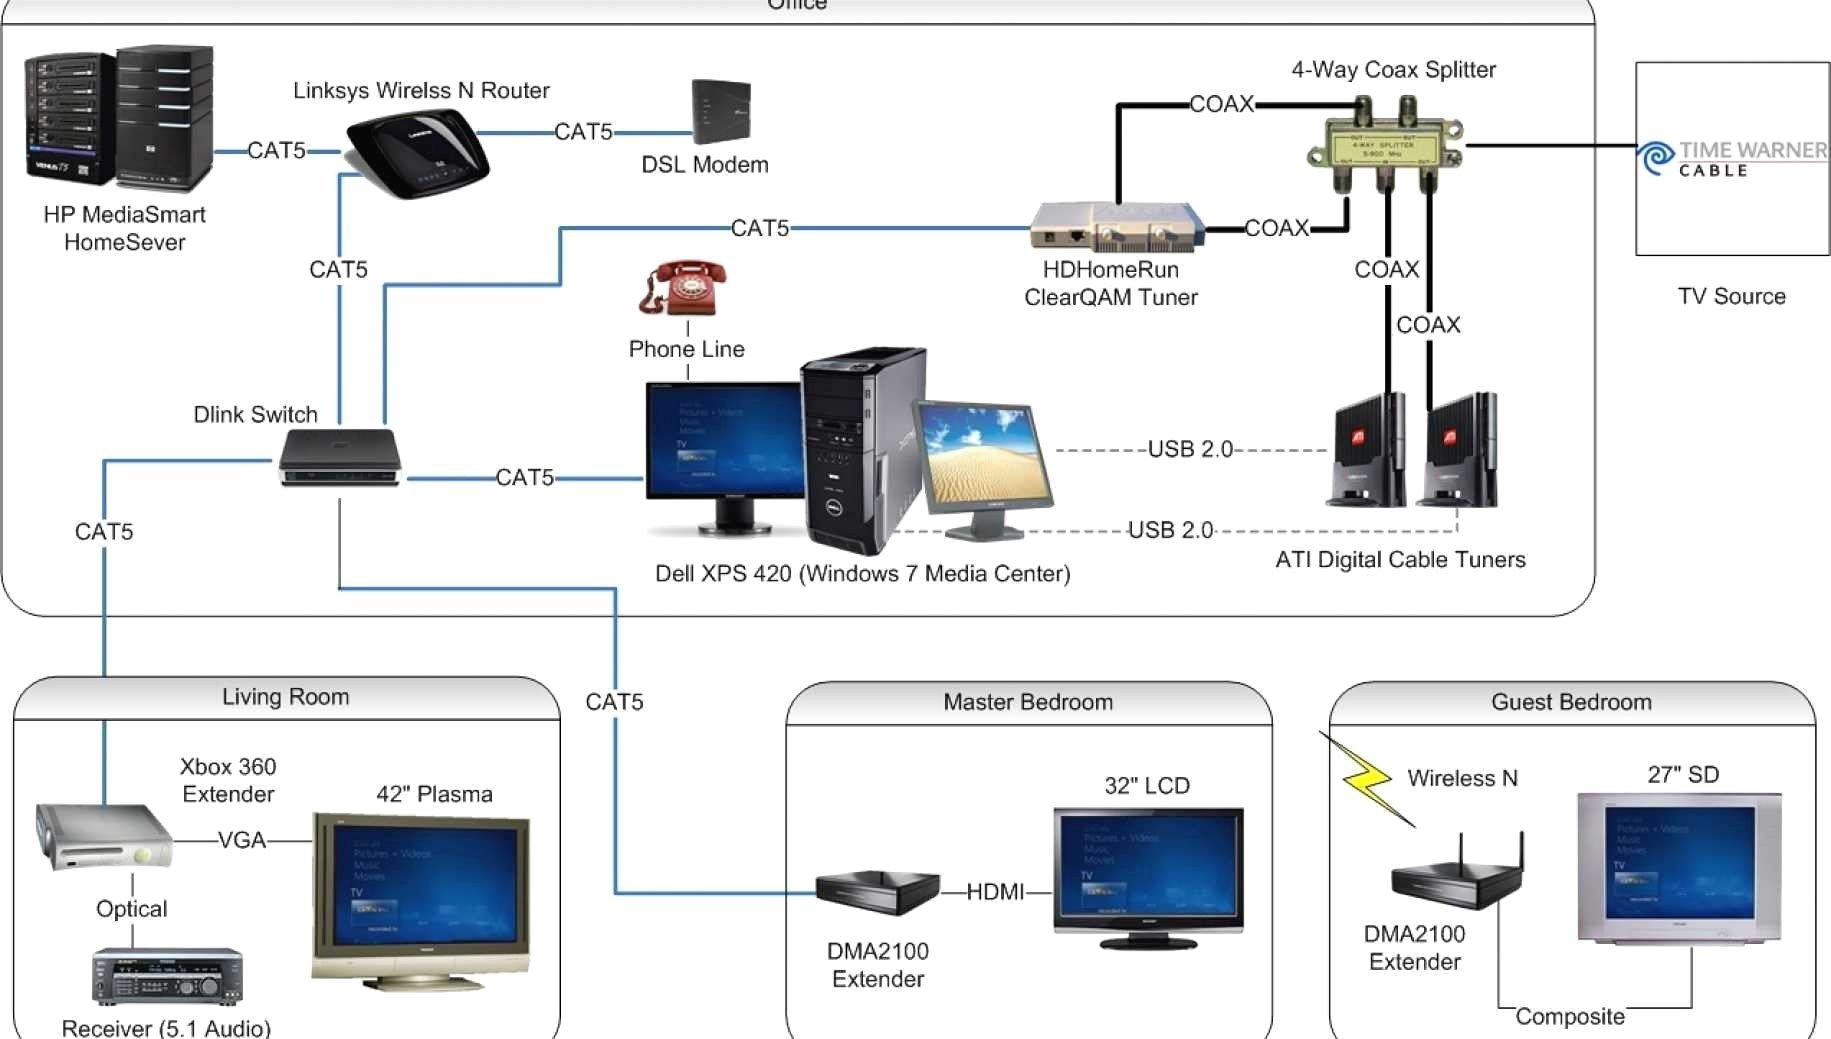 Pin By Zeram On Network Topology And Design Home Network Network Switch Diagram Design